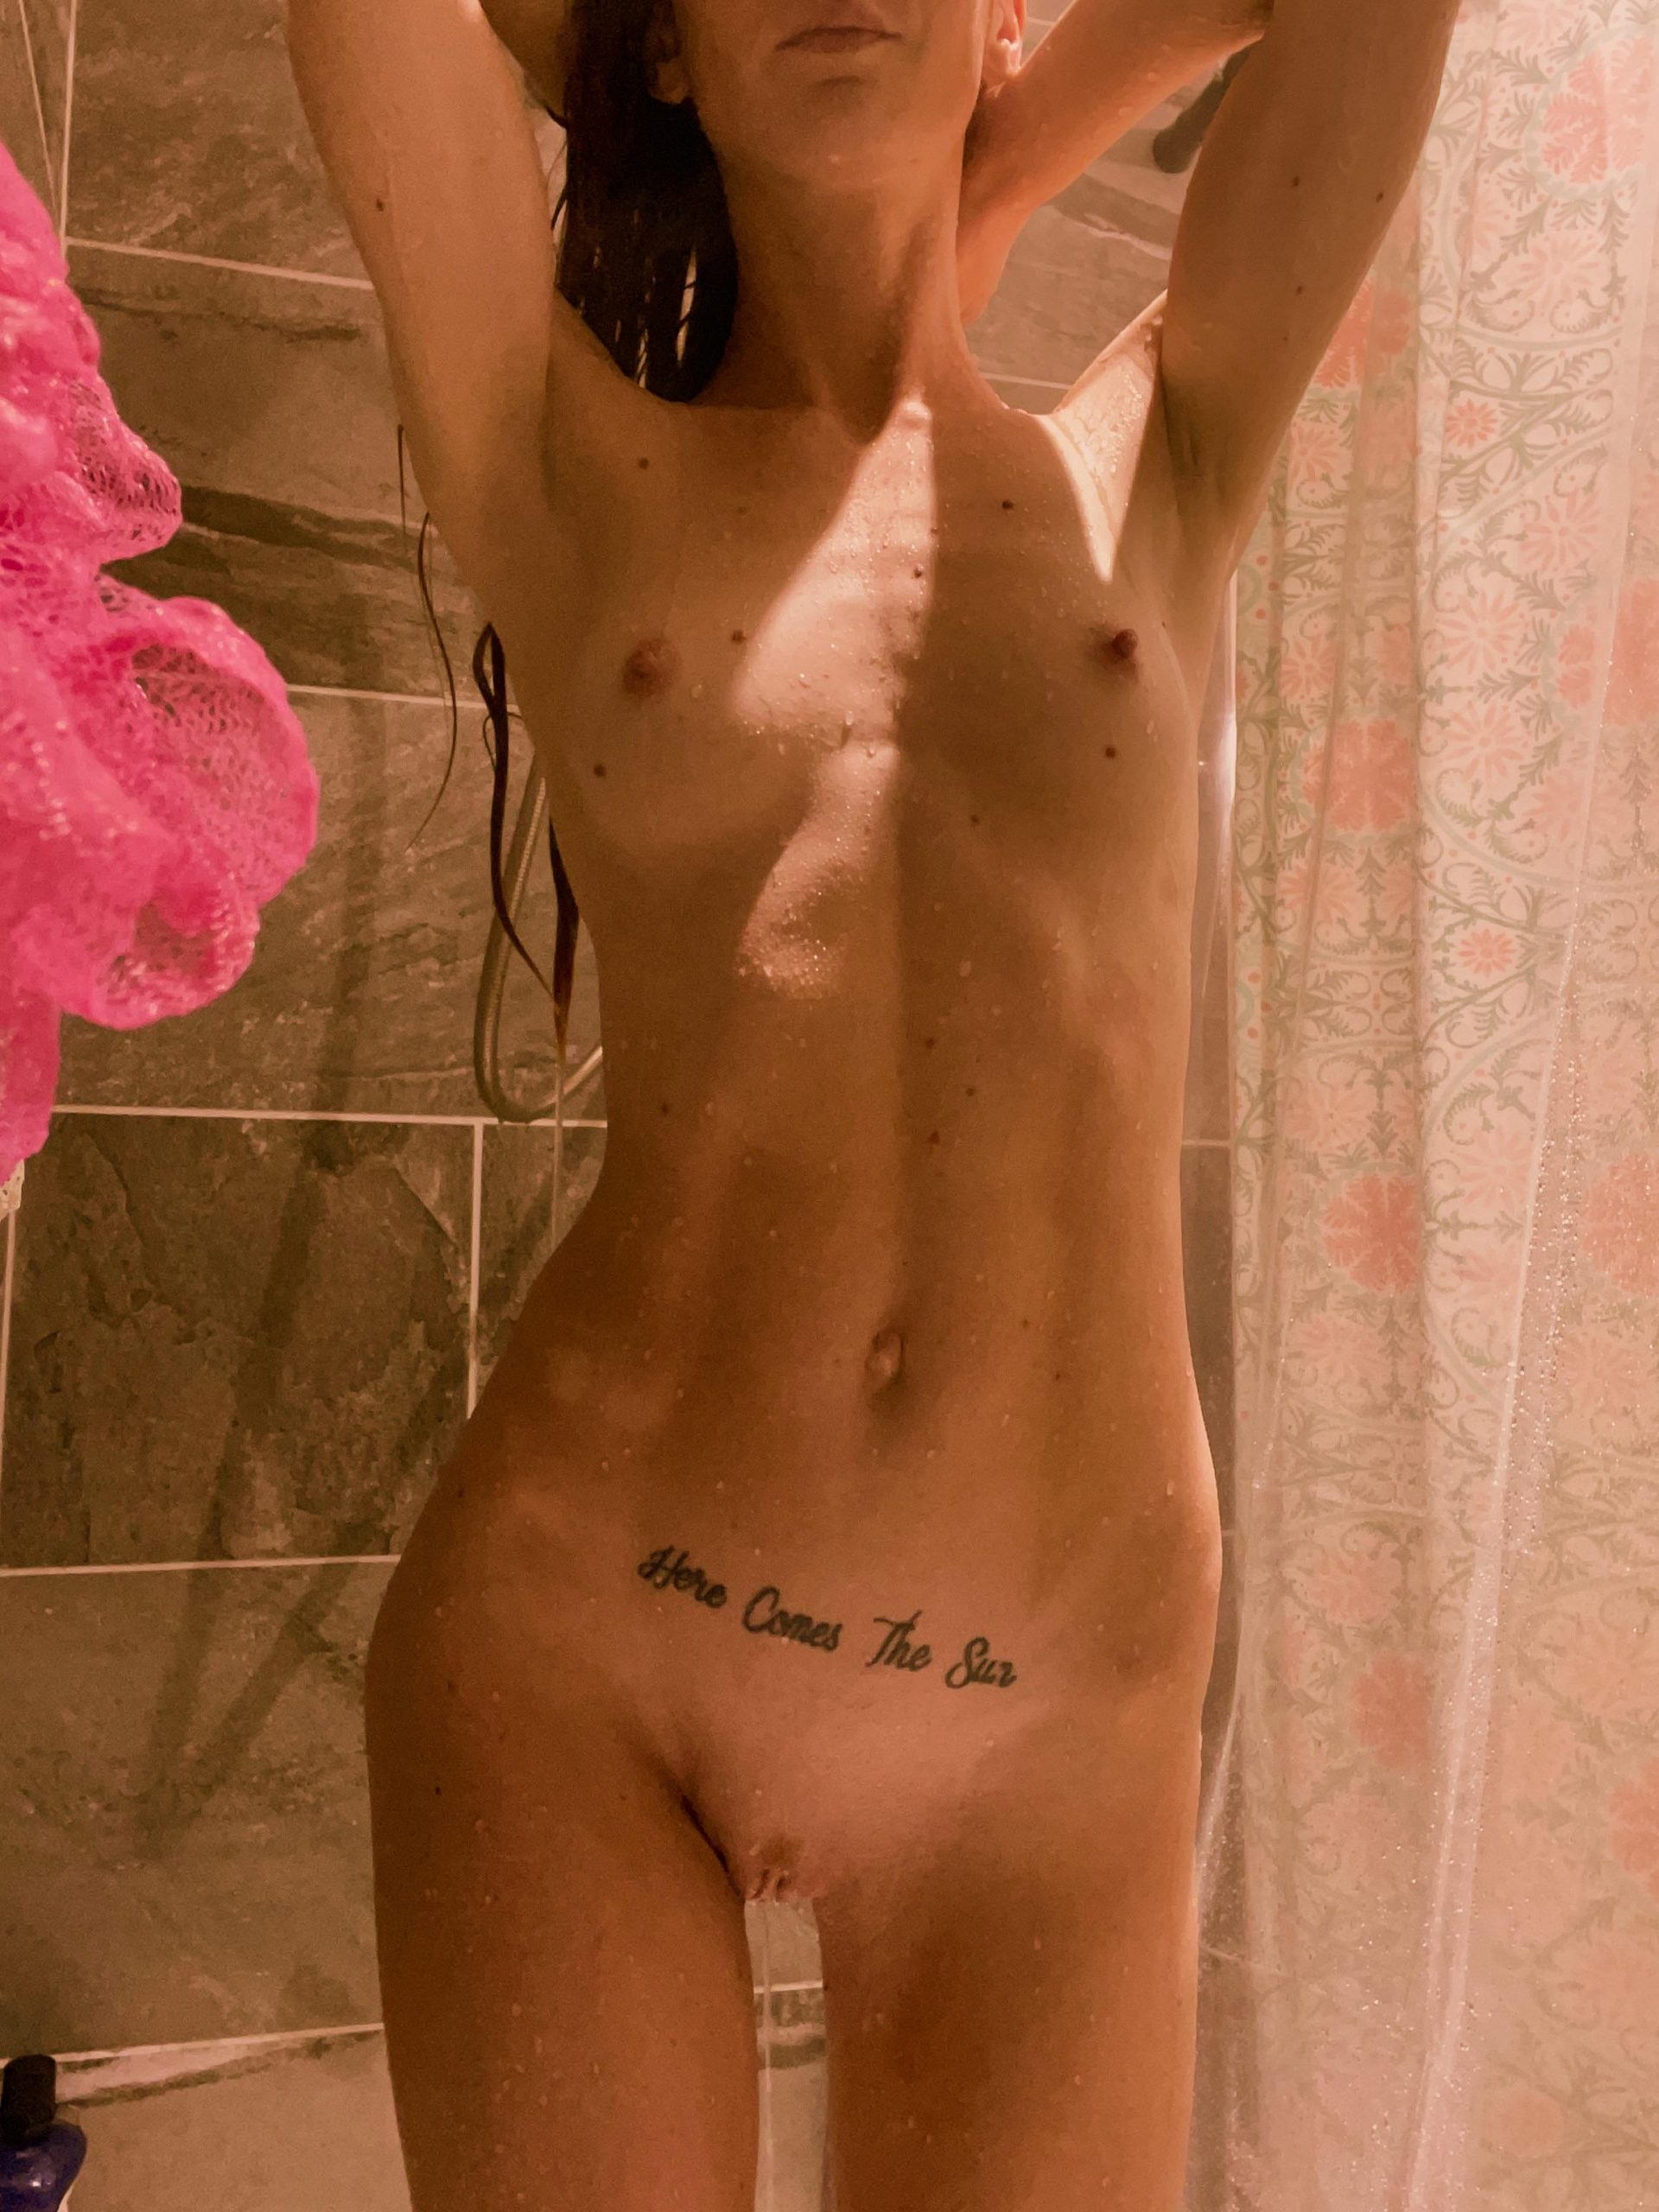 Who Loves Shower Nudes?